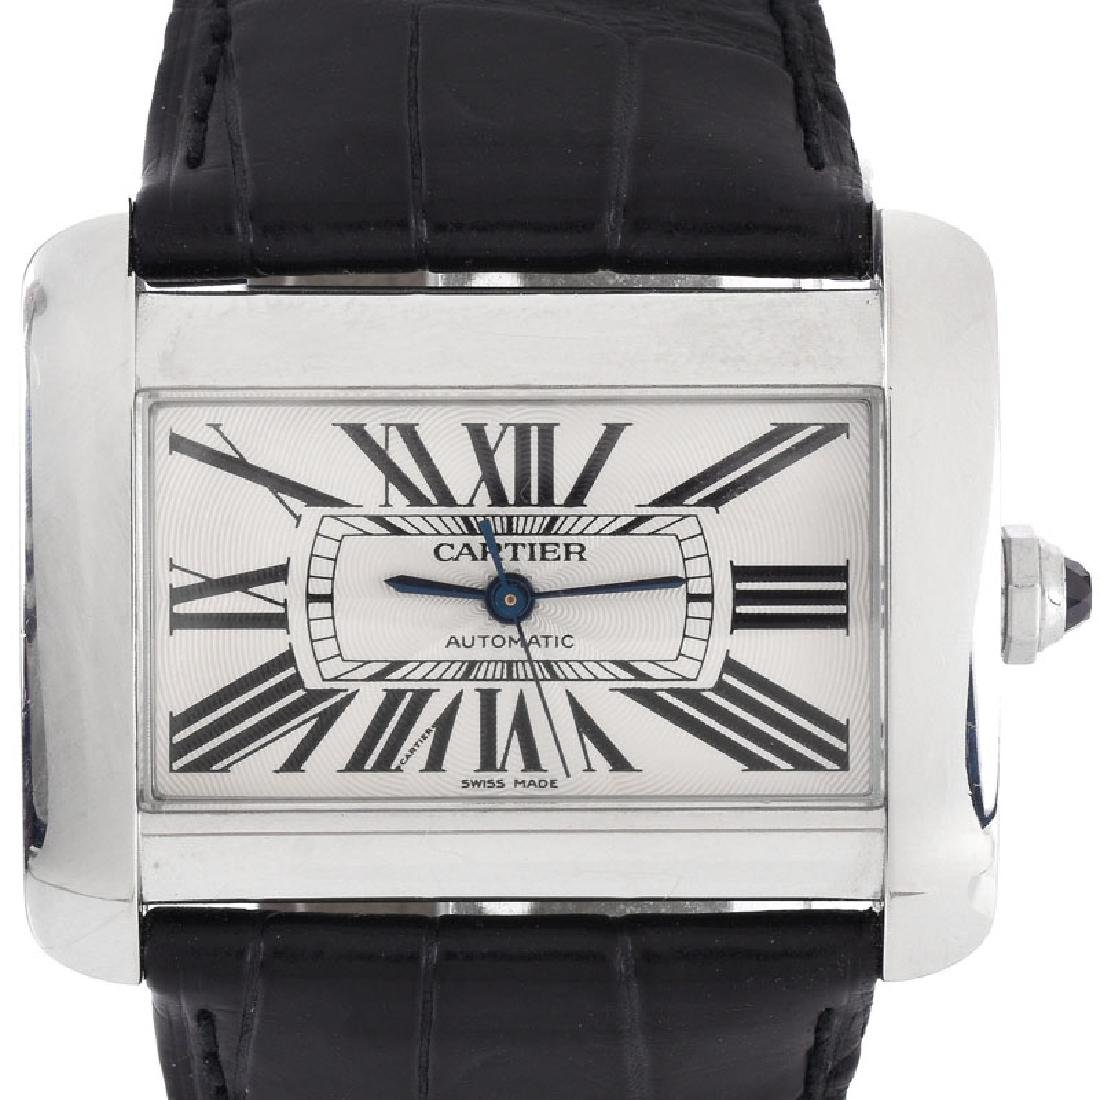 Two (2) Lady's Cartier Watches - 3